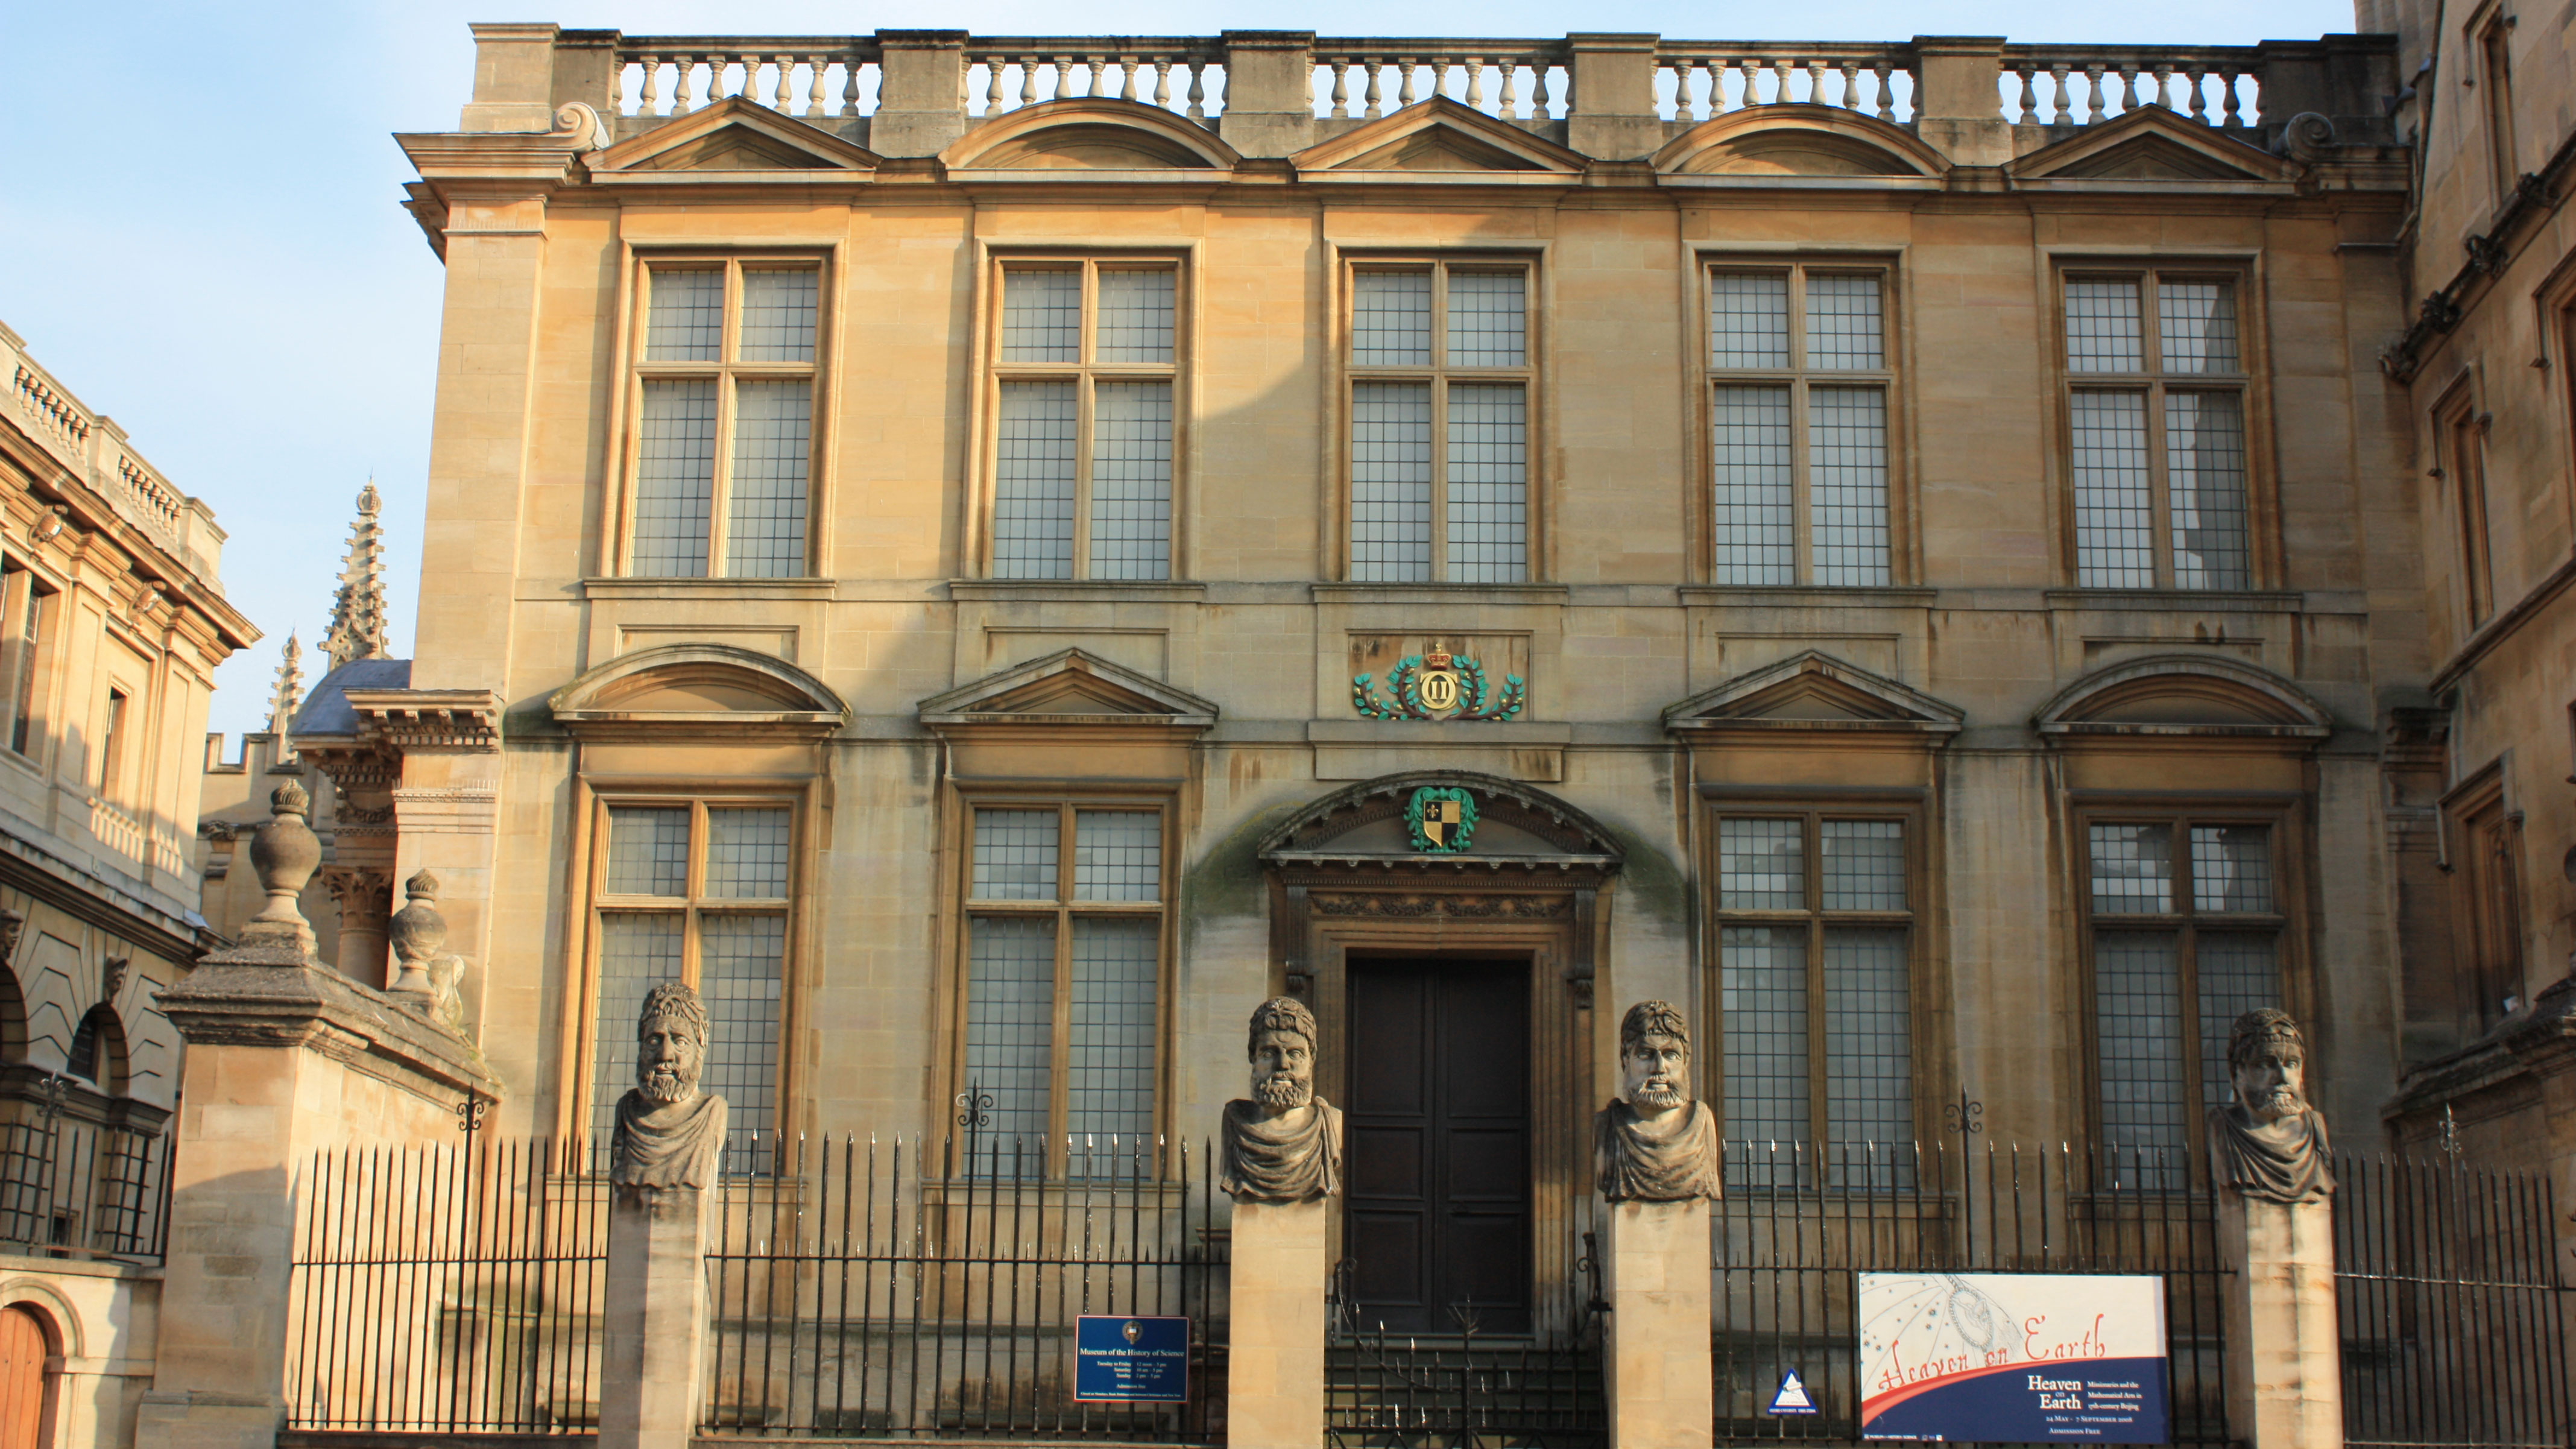 history of science Welcome to the museum of the history of science mhs houses an unrivalled collection of early scientific instruments in the world's oldest surviving purpose-built museum building, the old ashmolean on broad street, oxford.